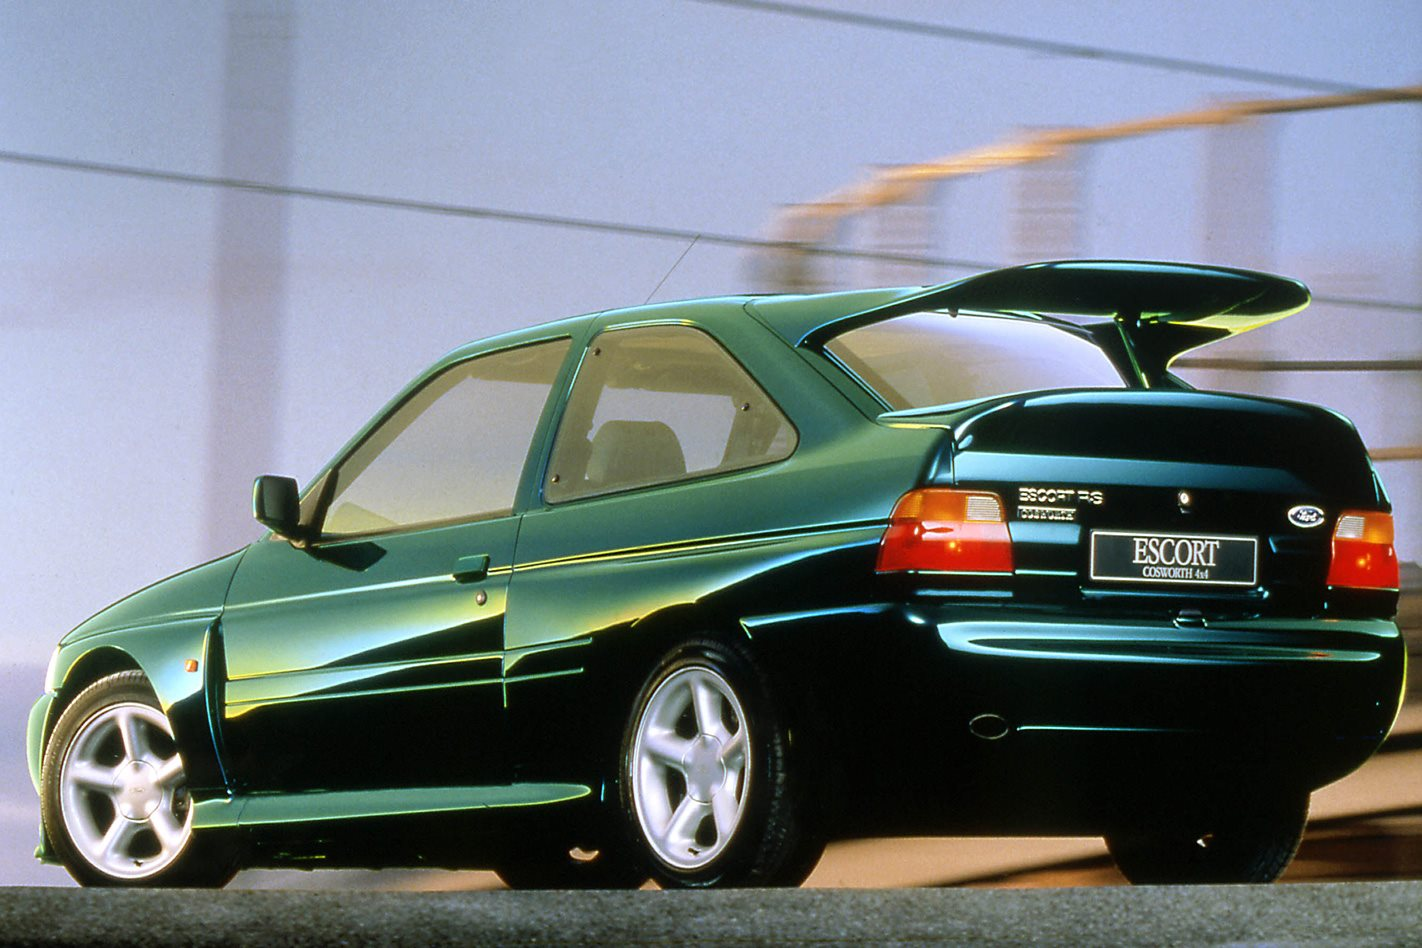 1992 Ford Escort RS Cosworth Spoiler